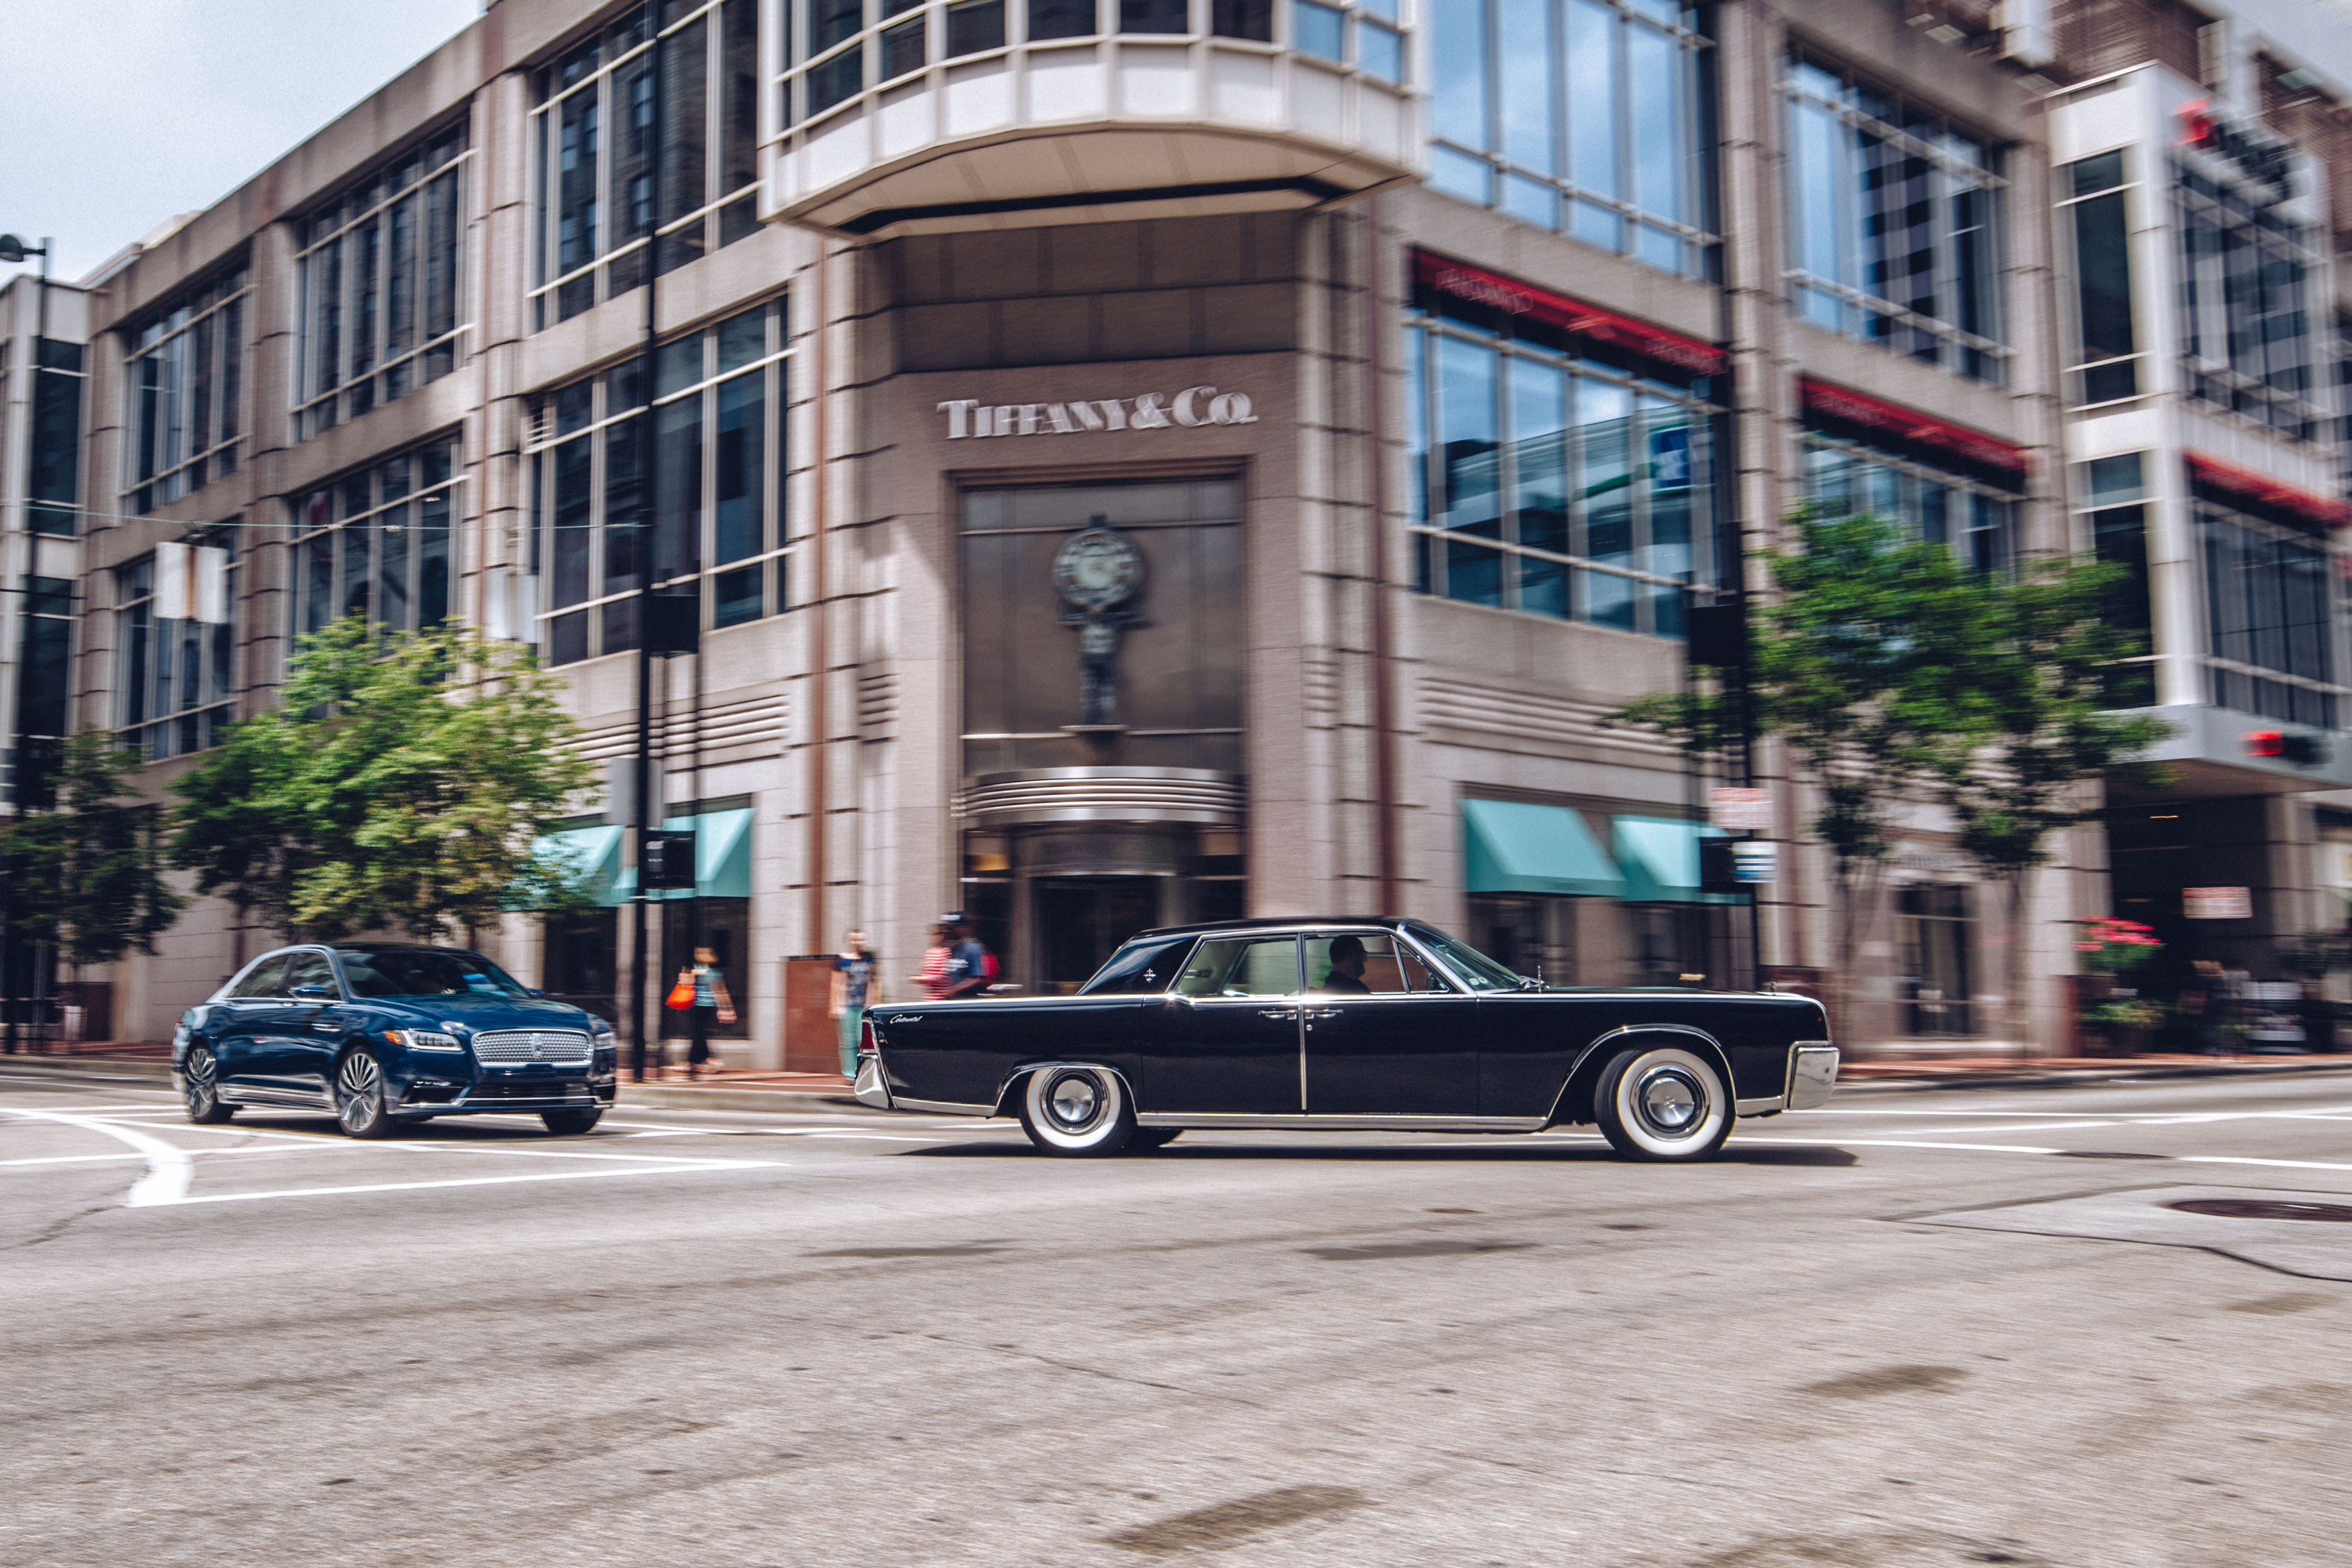 The Continental actually got longer in '64, growing three inches to more than 18 feet (it grew again in '66 and '69). The '64 is more than a foot longer than the new model.